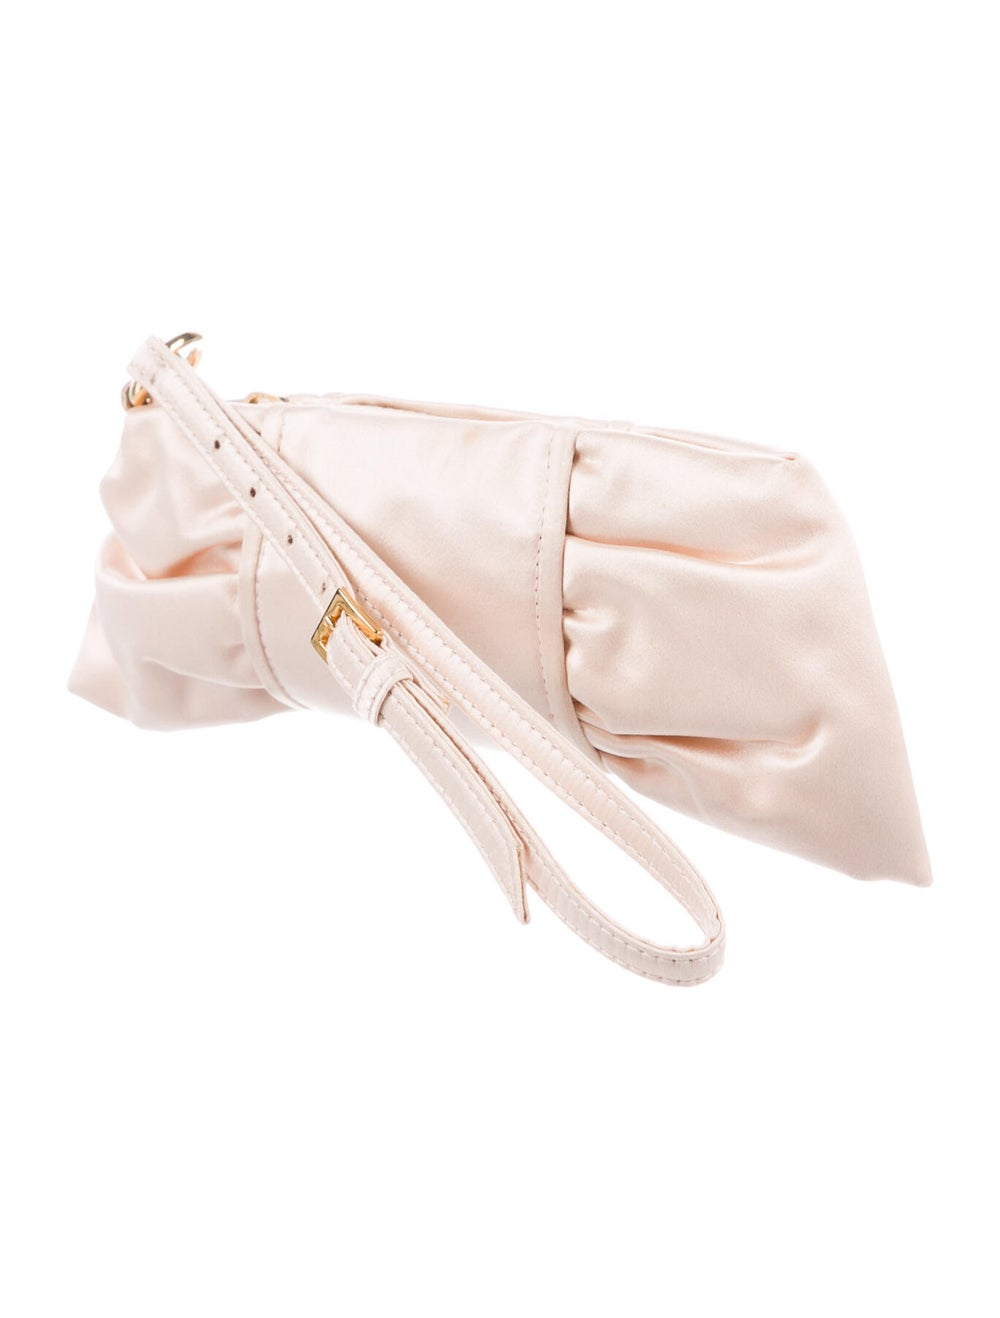 Valentino Satin Clutch w/ Tags Pink - image 3